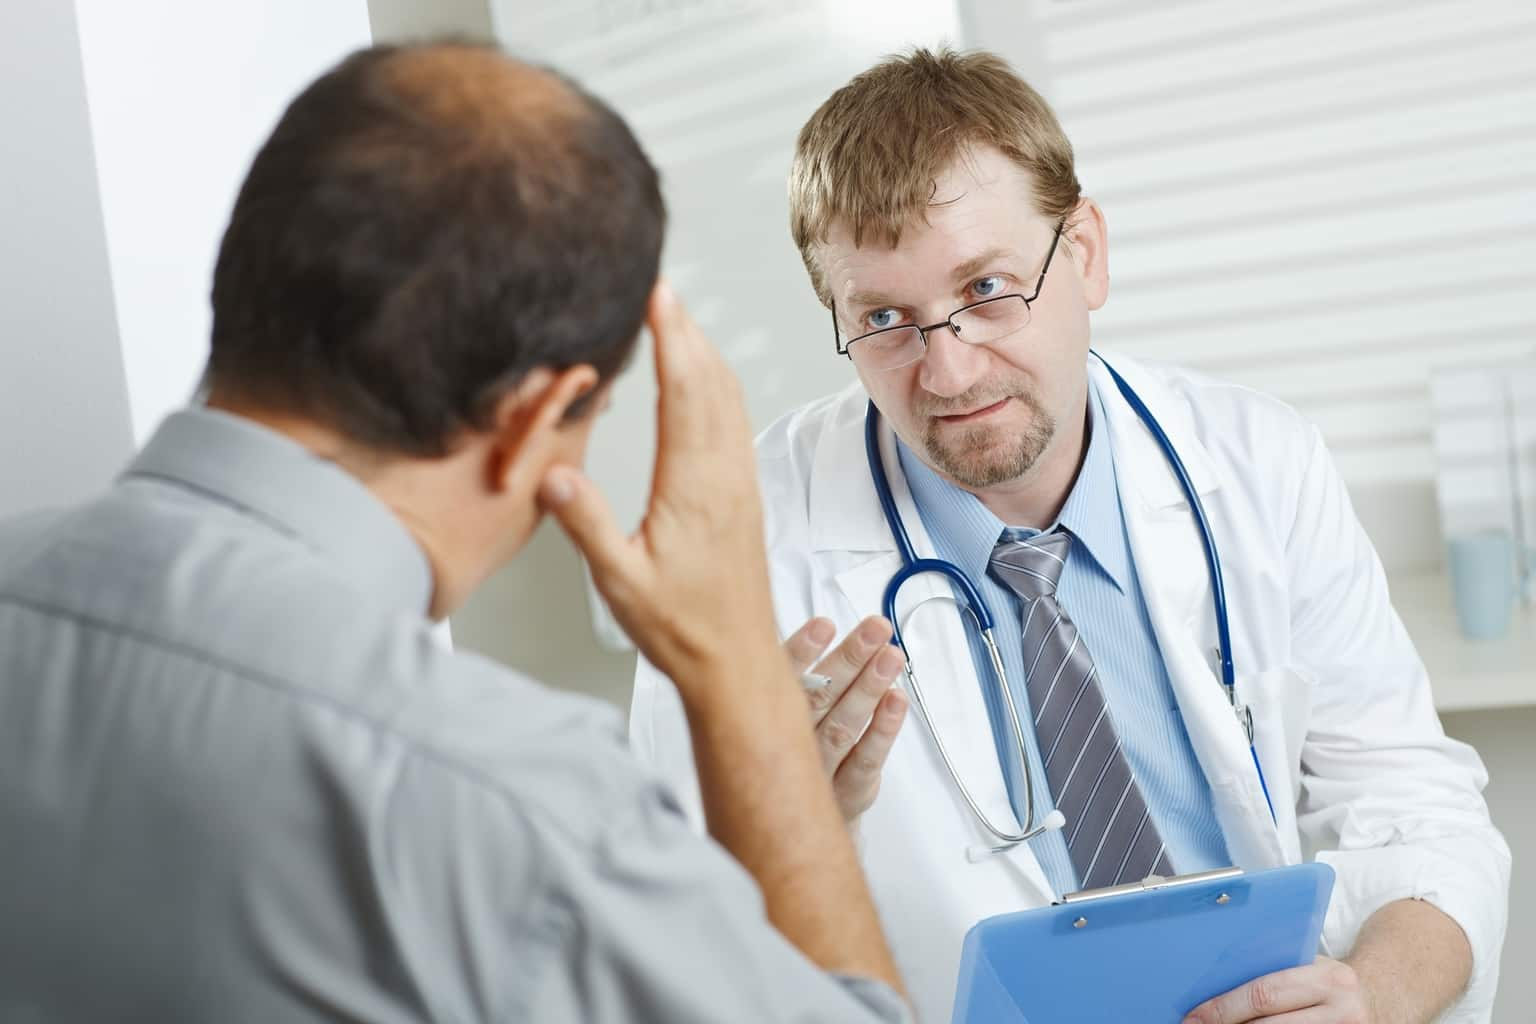 Vasectomies may cause prostate cancer and lower testosterone